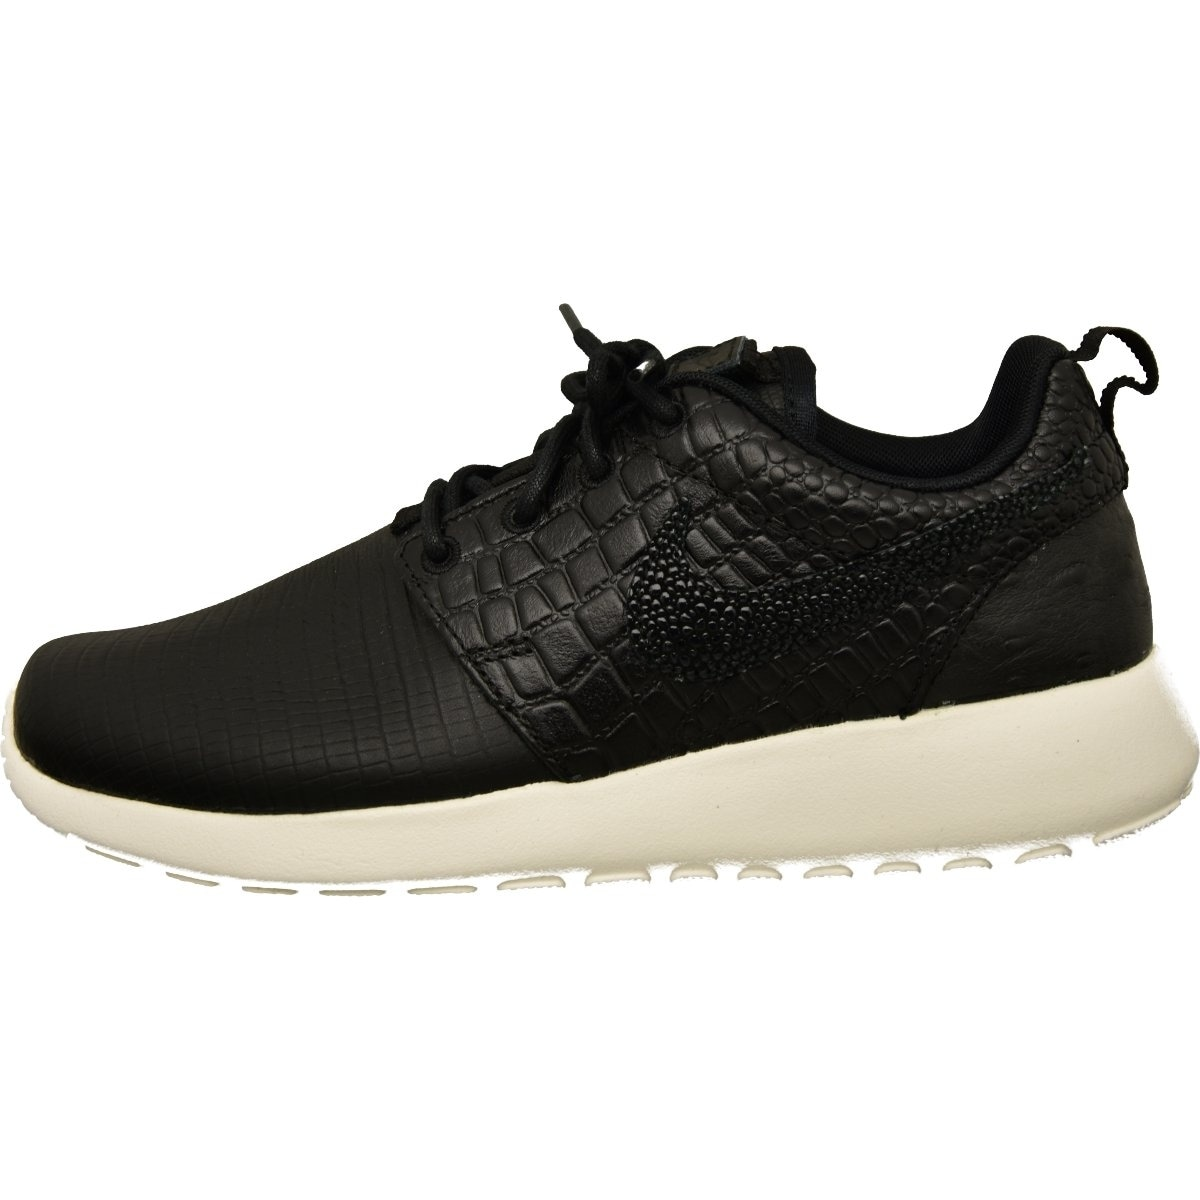 77dd461da4df Shop Nike Womens Roshe One Lx Low Top Lace Up Fashion Sneakers ...